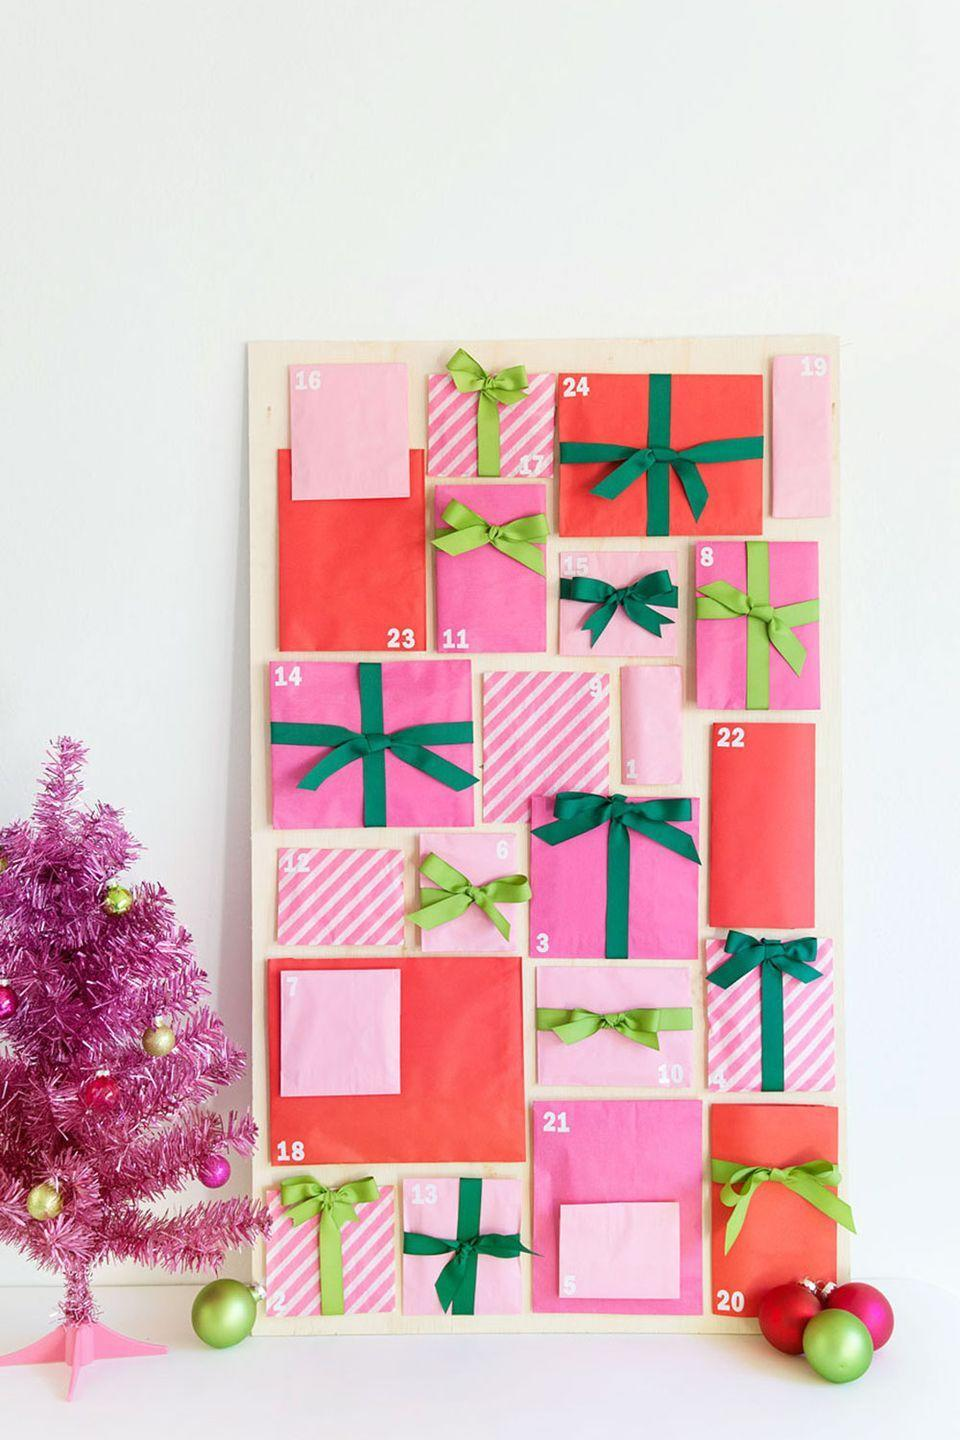 "<p>We're not just trying to make fetch happen here—pink can look totally festive. This DIY advent calendar is made out of red and pink paper bags.</p><p>Get the tutorial at <a href=""https://tellloveandparty.com/2016/12/diy-paper-bag-advent-calendar.html"" rel=""nofollow noopener"" target=""_blank"" data-ylk=""slk:Tell Love and Party"" class=""link rapid-noclick-resp"">Tell Love and Party</a>. </p>"